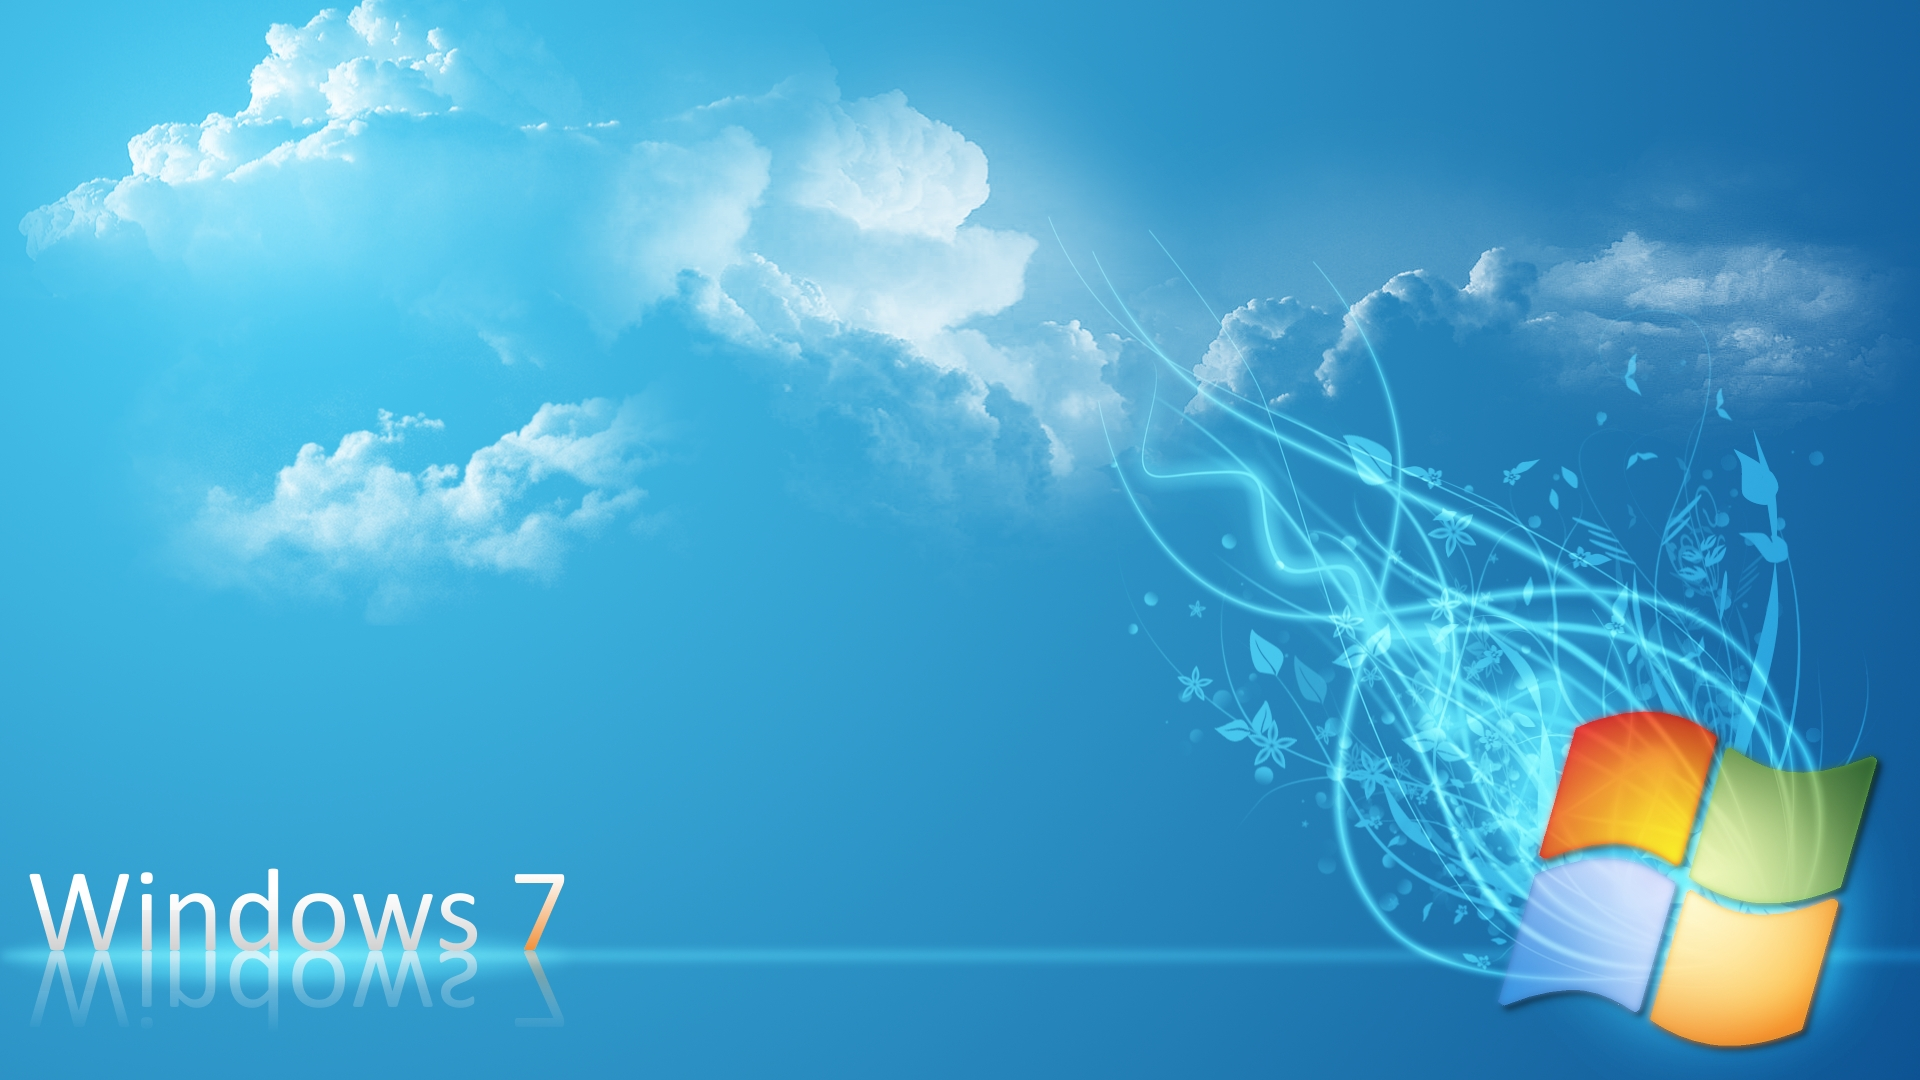 57 HD Windows 7 Wallpapers For Download 1920x1080